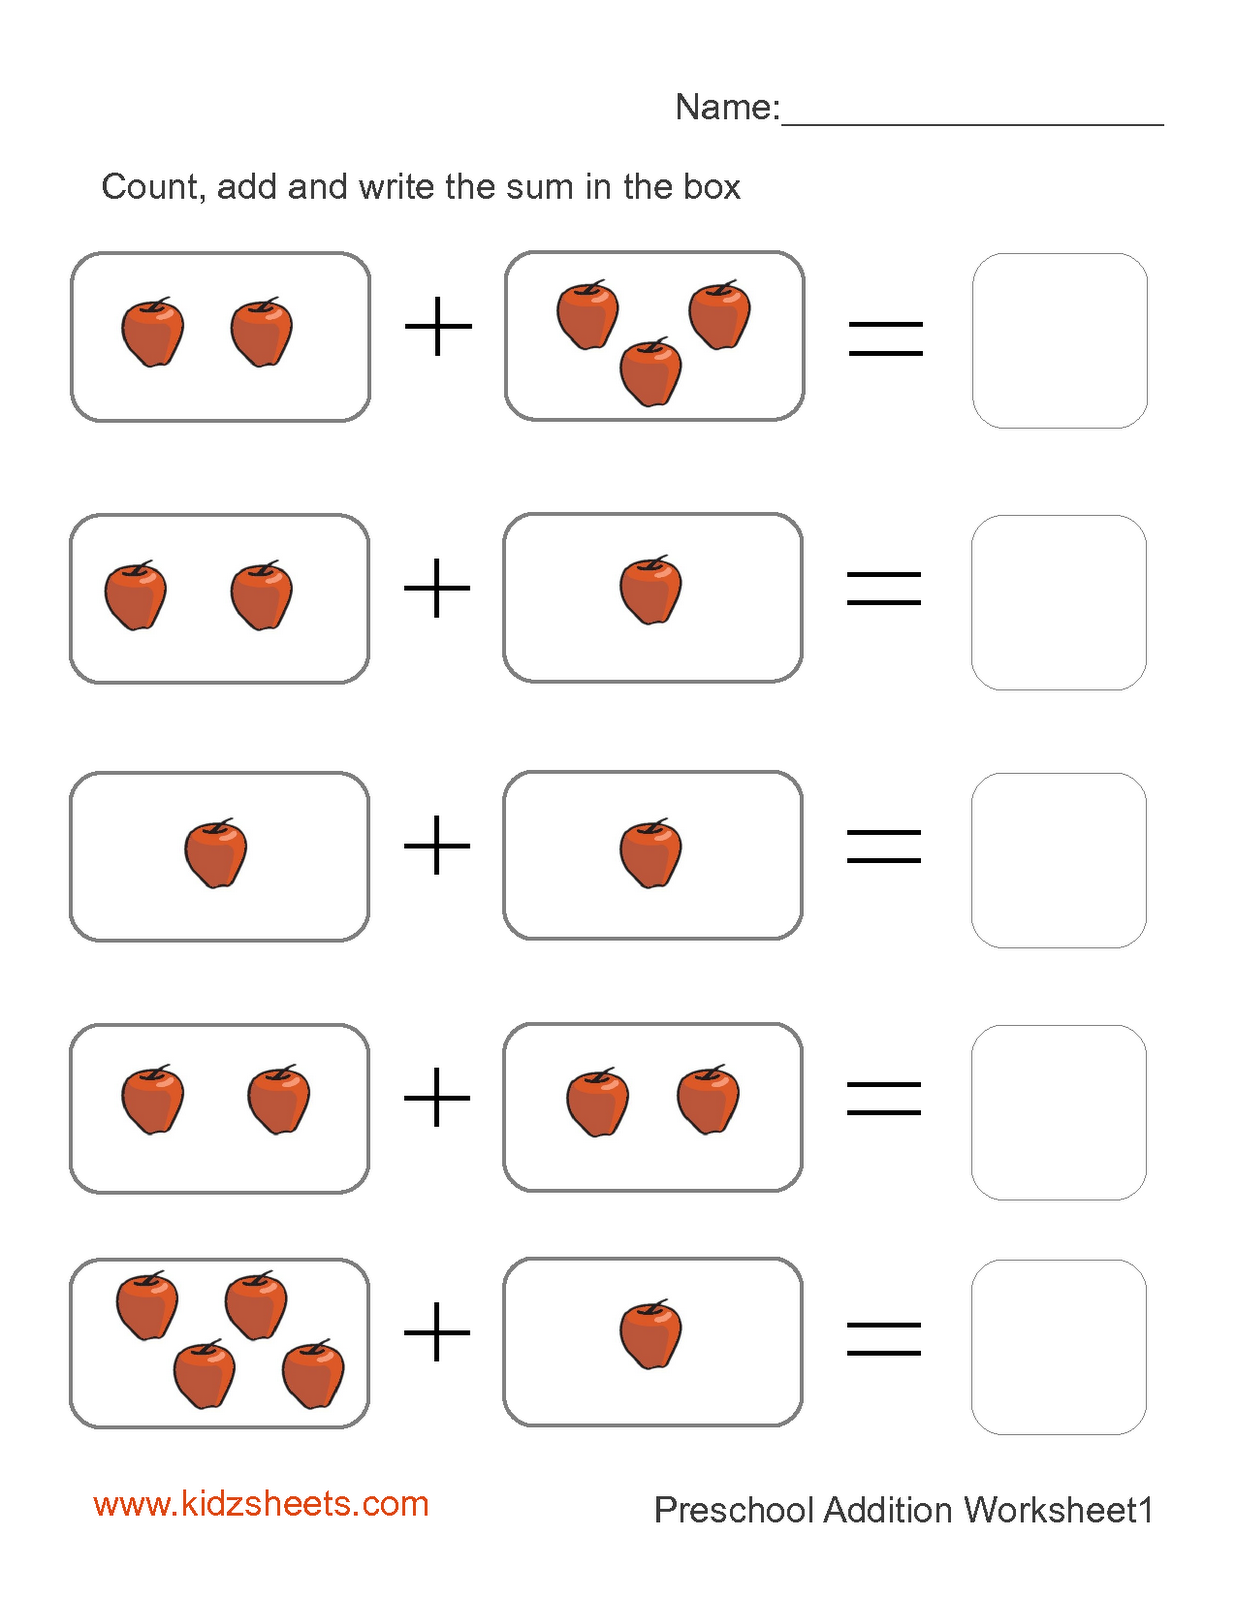 {Adding One Printable Addition Worksheet for Kids – Addition Worksheets for Preschoolers